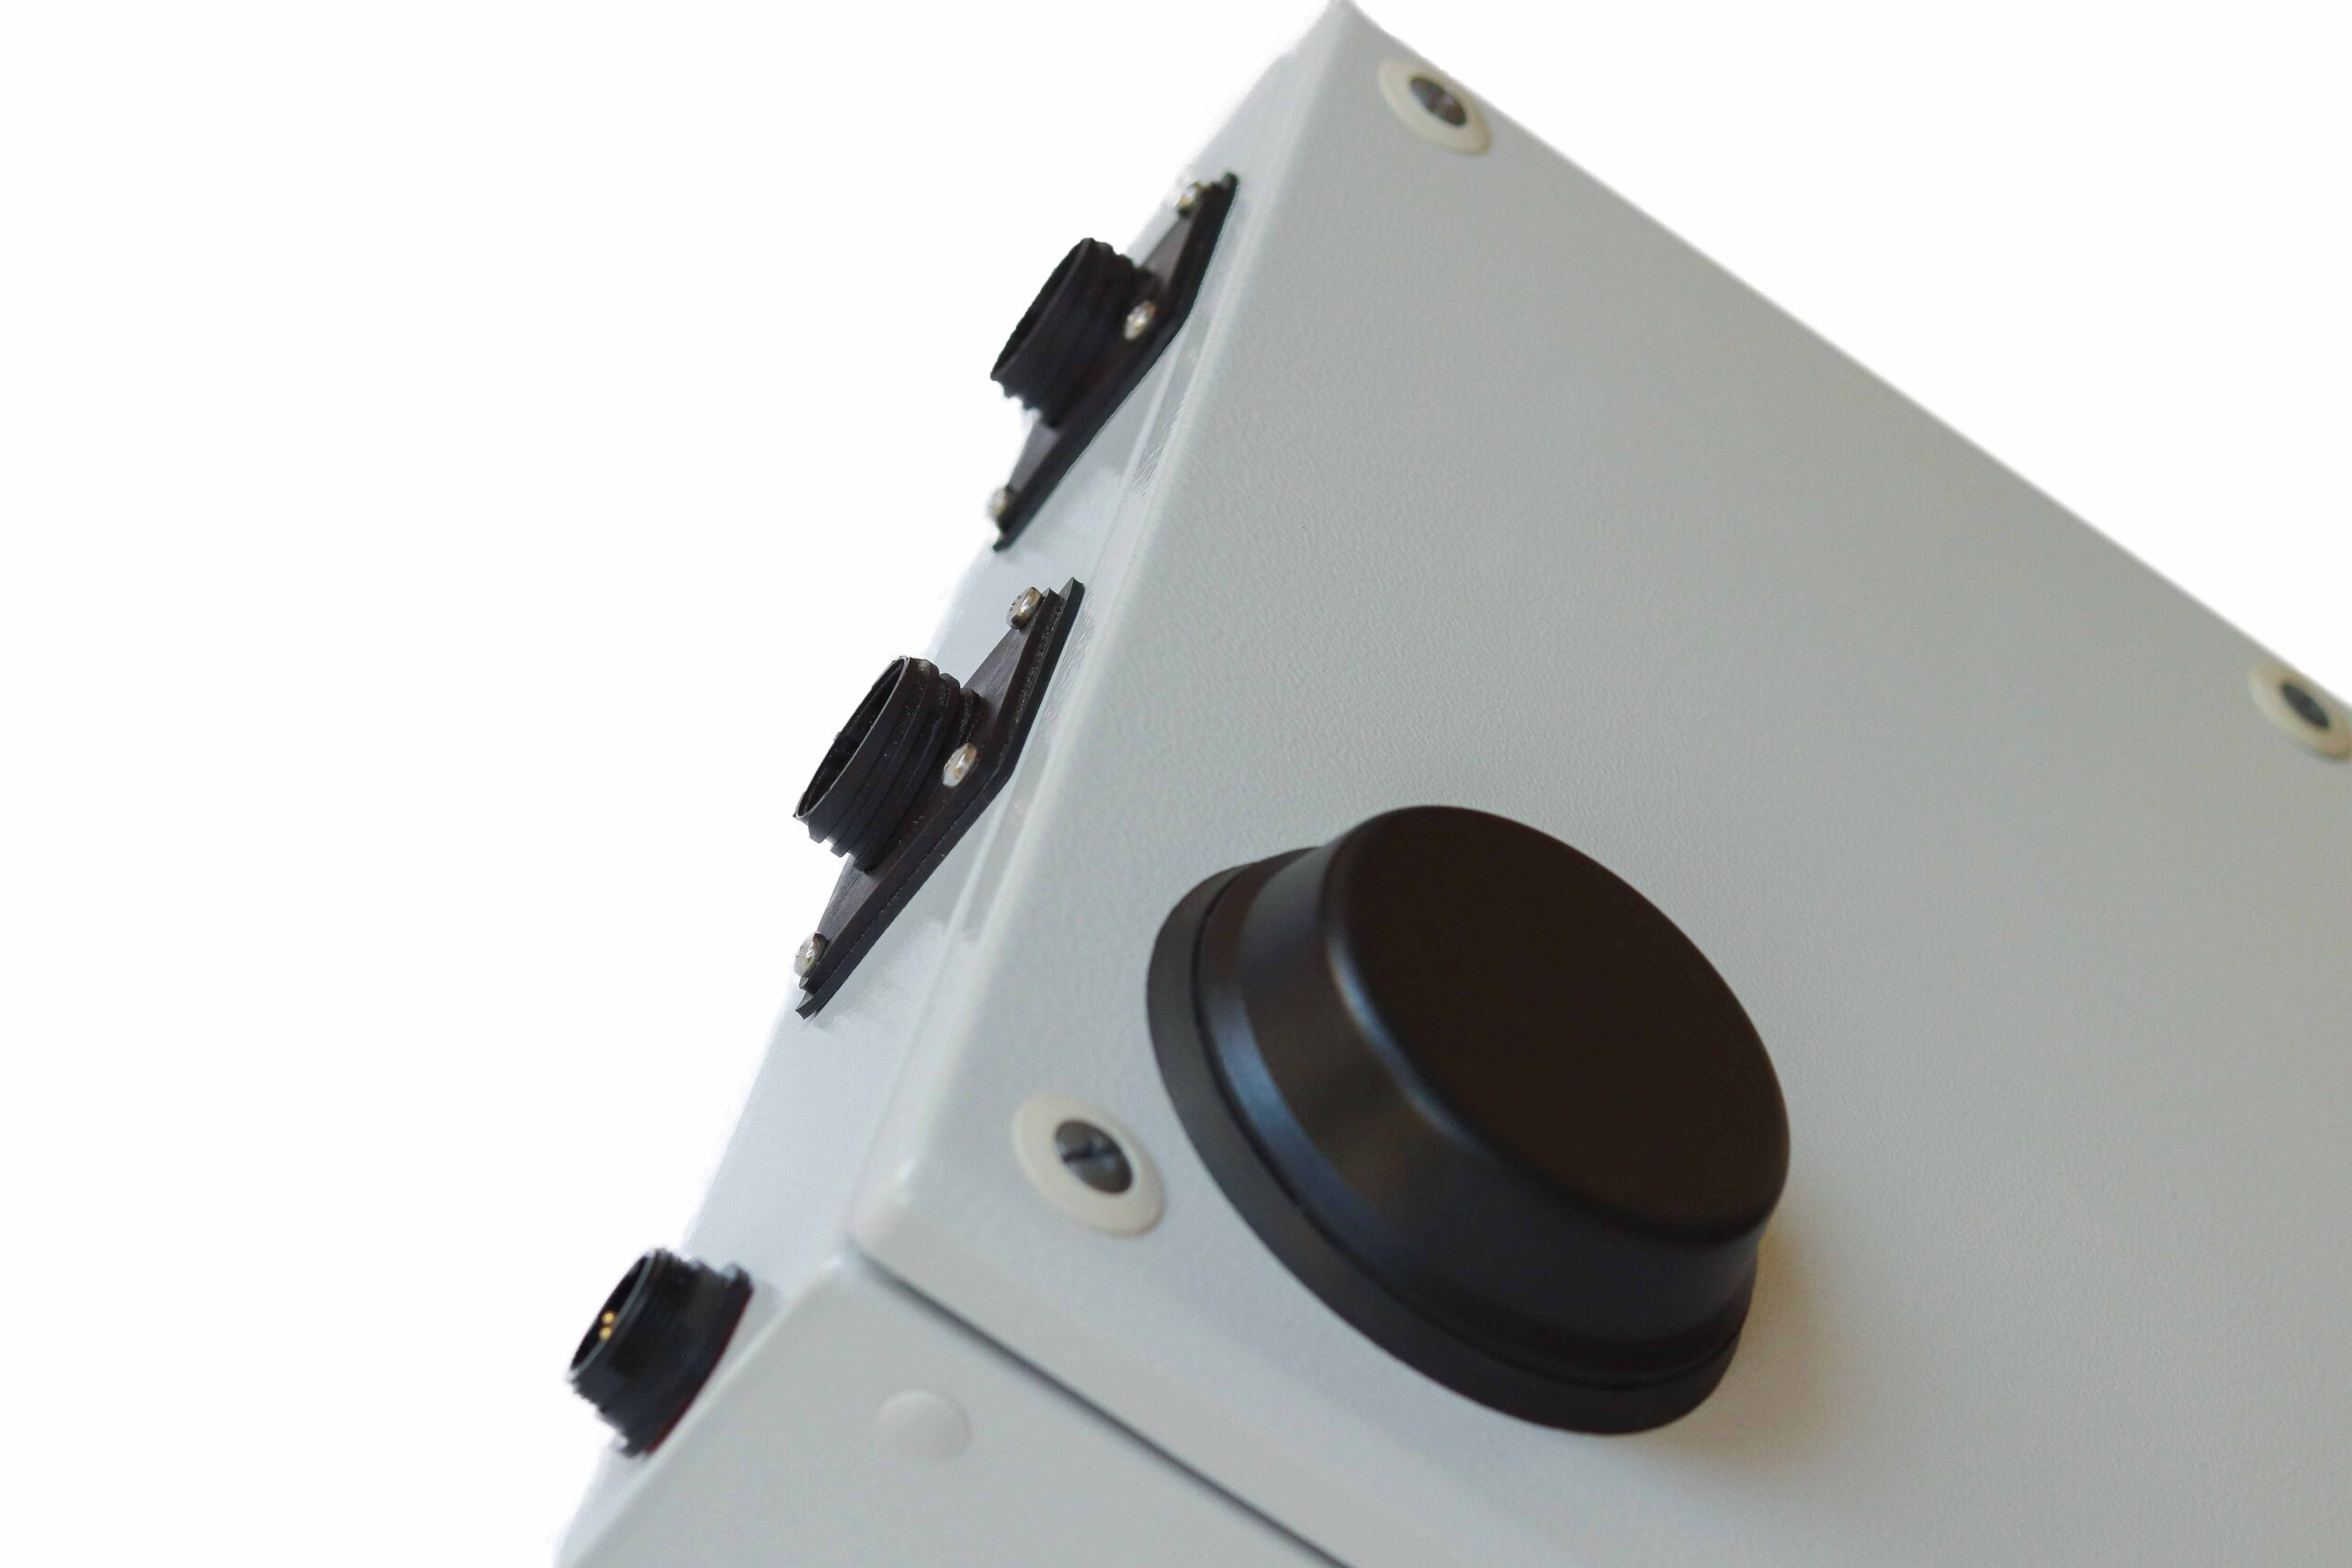 Industrial computer casing designed to minimise ingress of dust and environmental factors